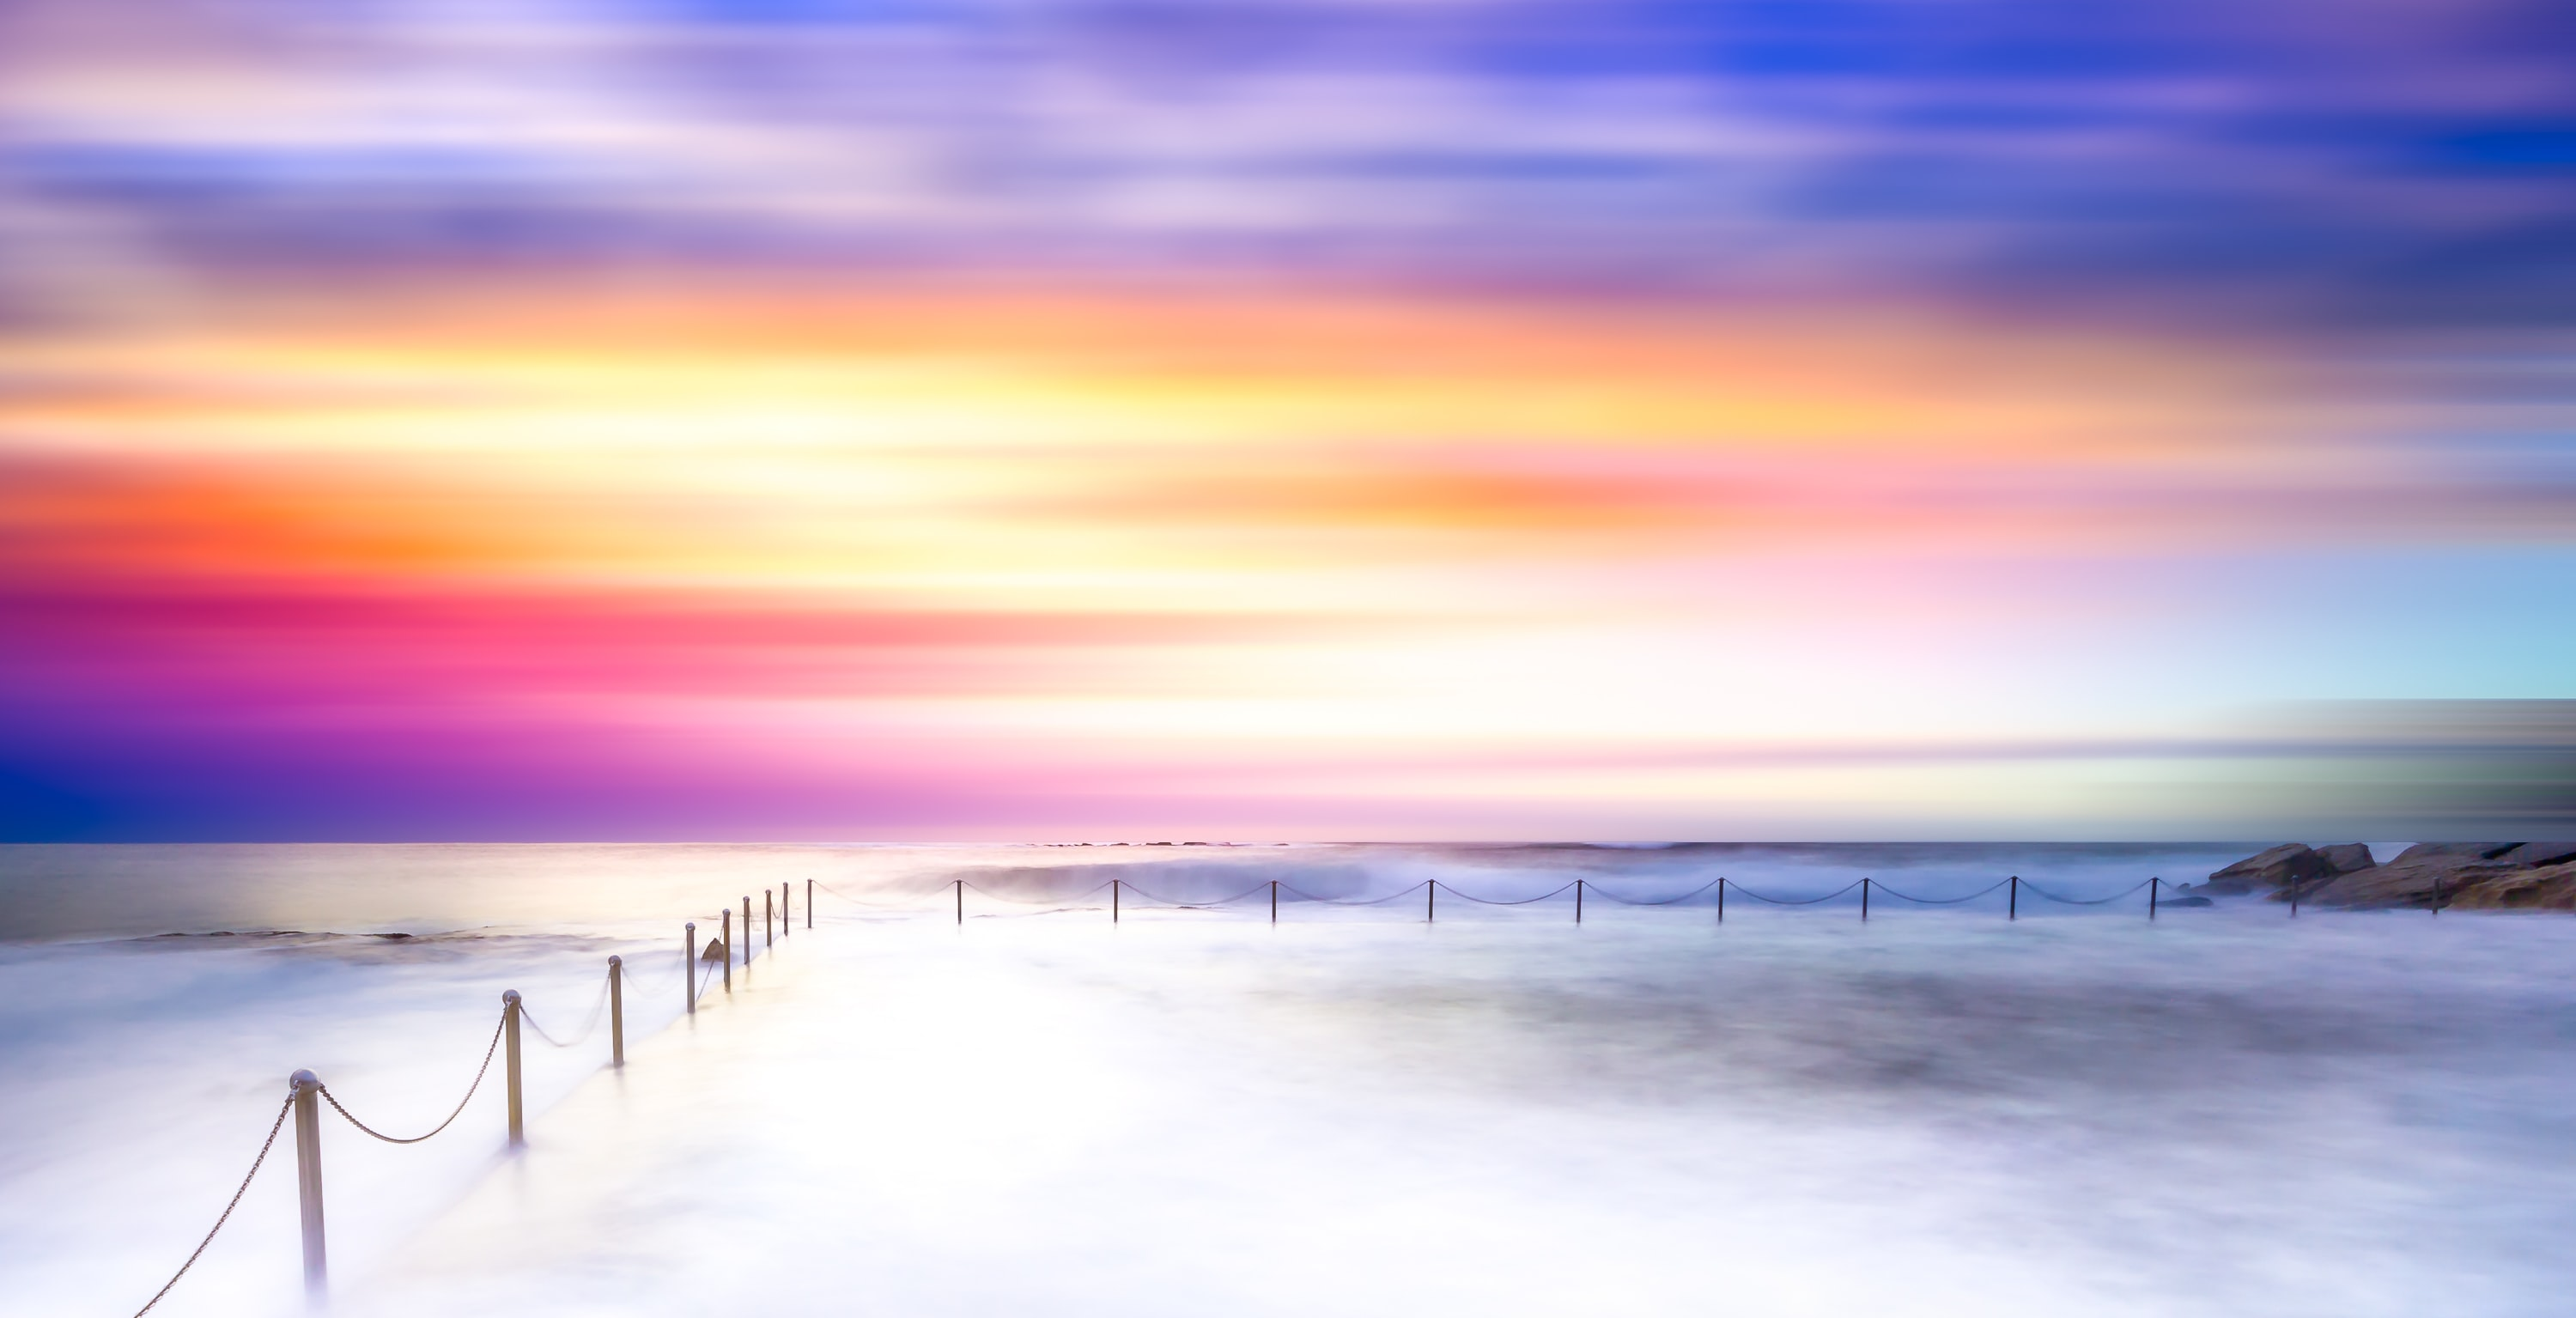 Illuminated sky with rainbow colors over the sea in Sydney with fences in the foreground.